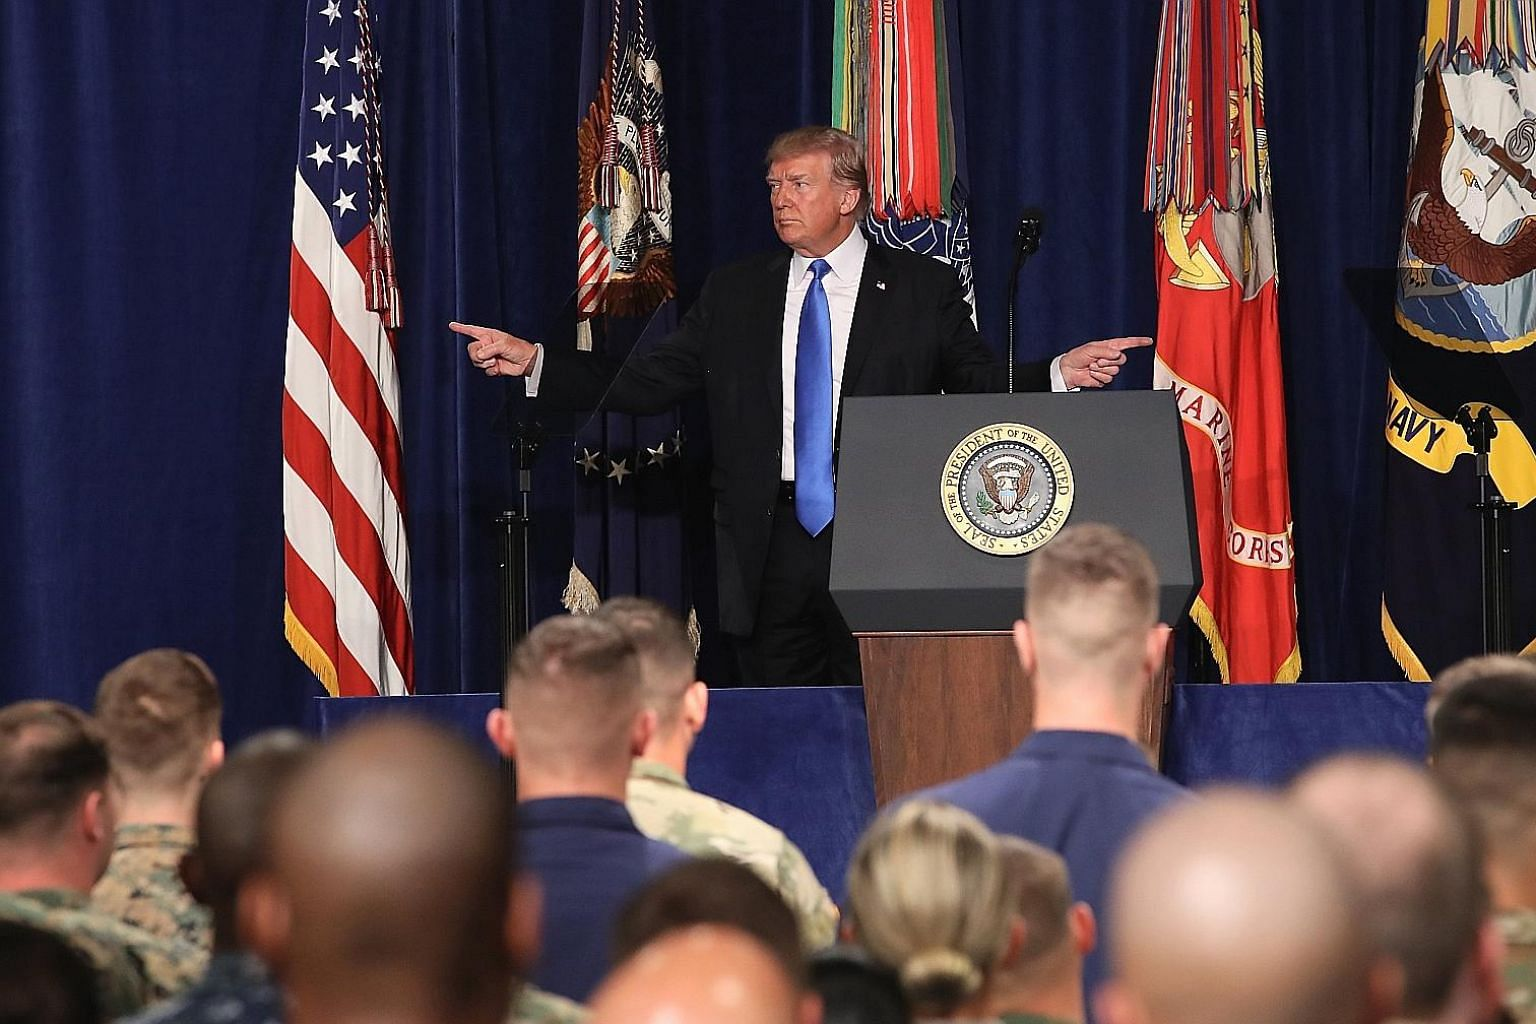 Left: US President Donald Trump before delivering remarks on his country's military involvement in Afghanistan at the Fort Myer base, in Virginia, on Monday. The US is expected to send about 4,000 troops to join the roughly 8,400 in Afghanistan to be